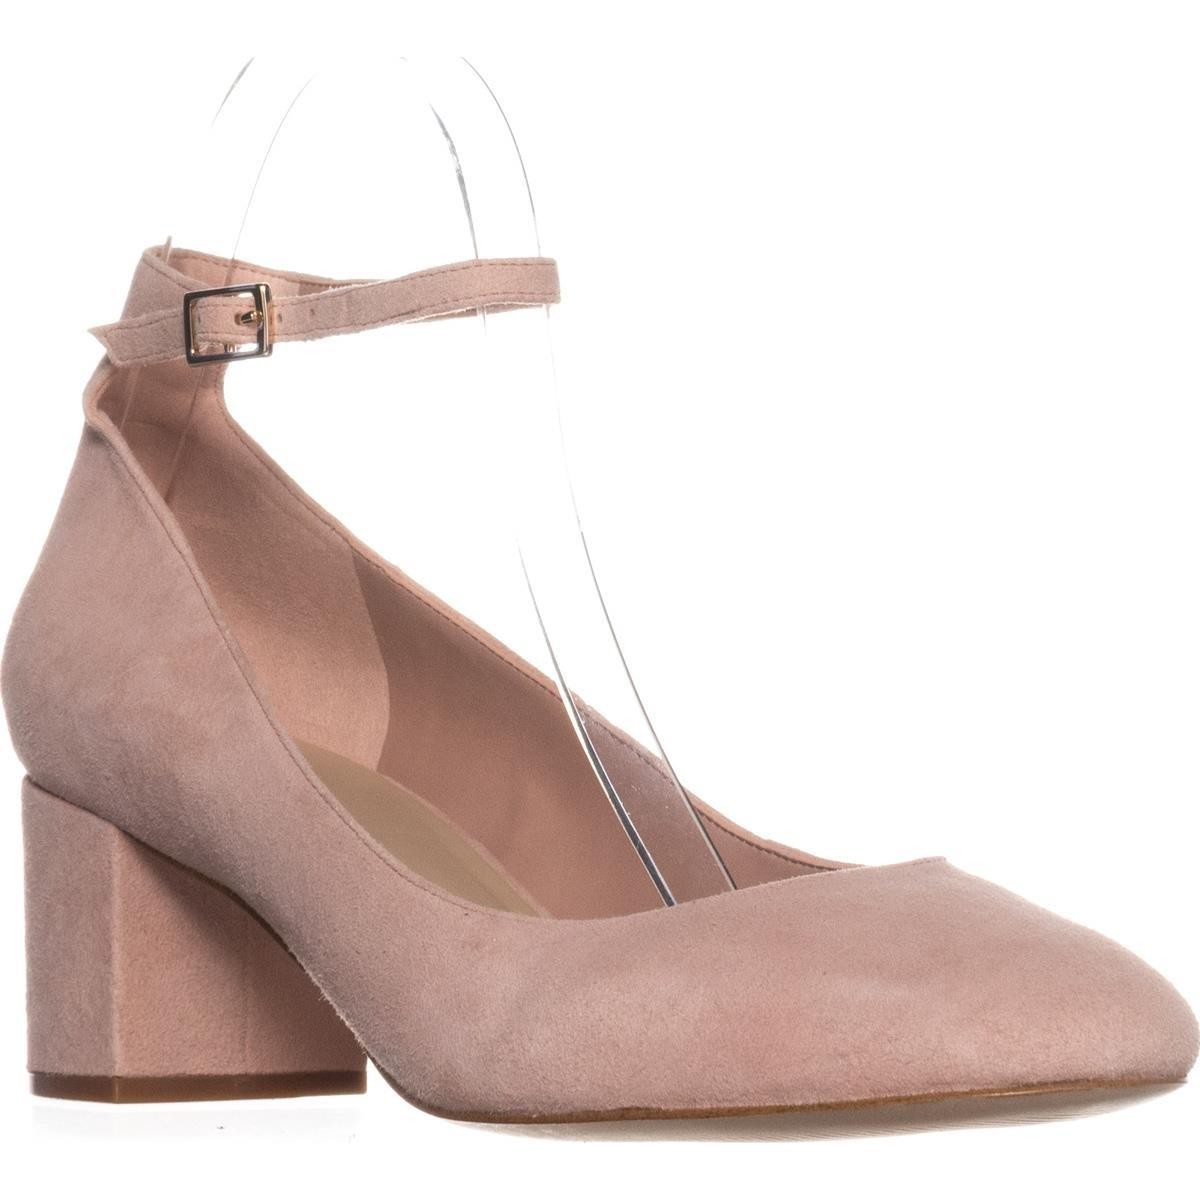 Aldo Womens Clarisse Suede Closed Toe Ankle Strap Classic Pumps Pink Size 8.5